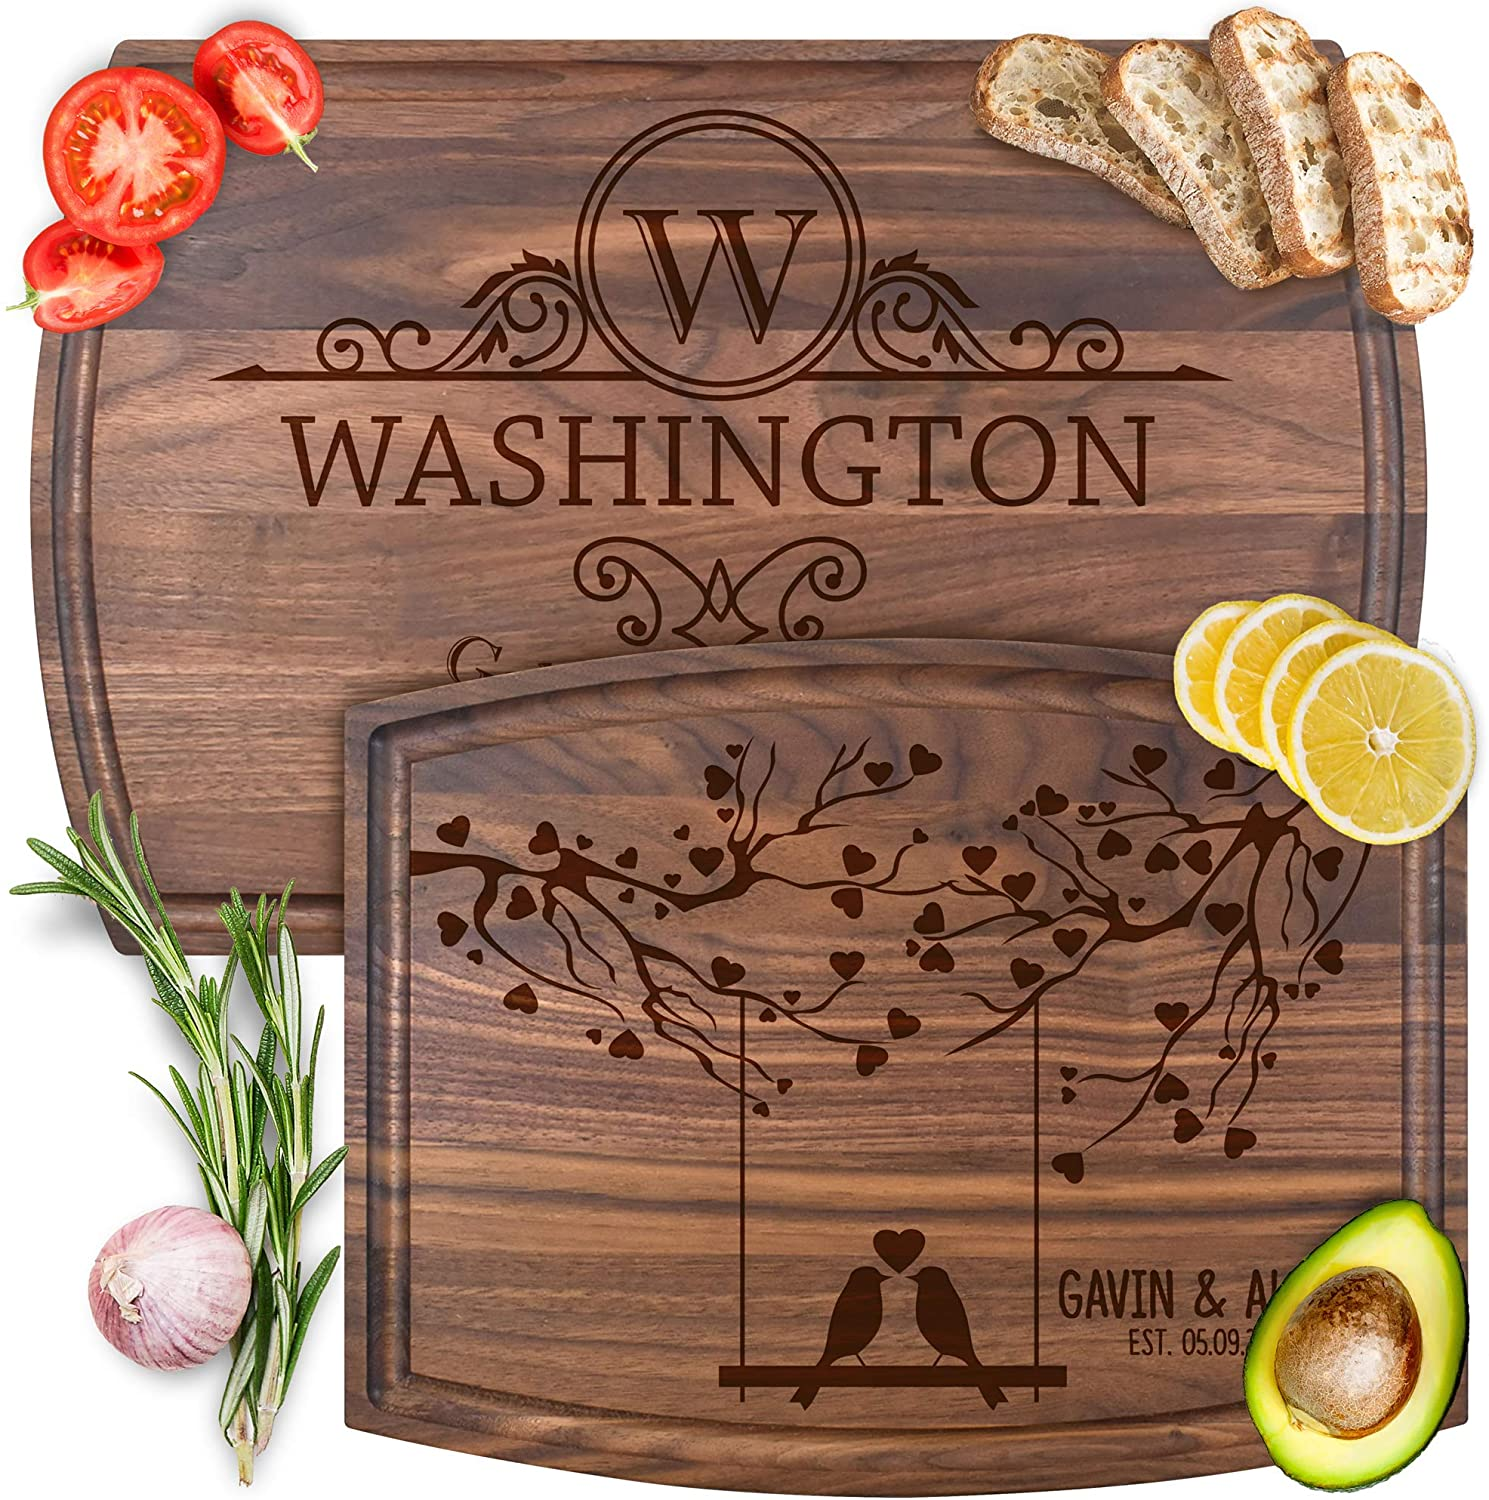 Personalized Housewarming, Anniversary & Wedding Gifts - 8 Unique Designs - Custom Engraved Wood Cutting & Serving Boards for Home & Kitchen for Parents, Couples, Young & Old - by Froolu